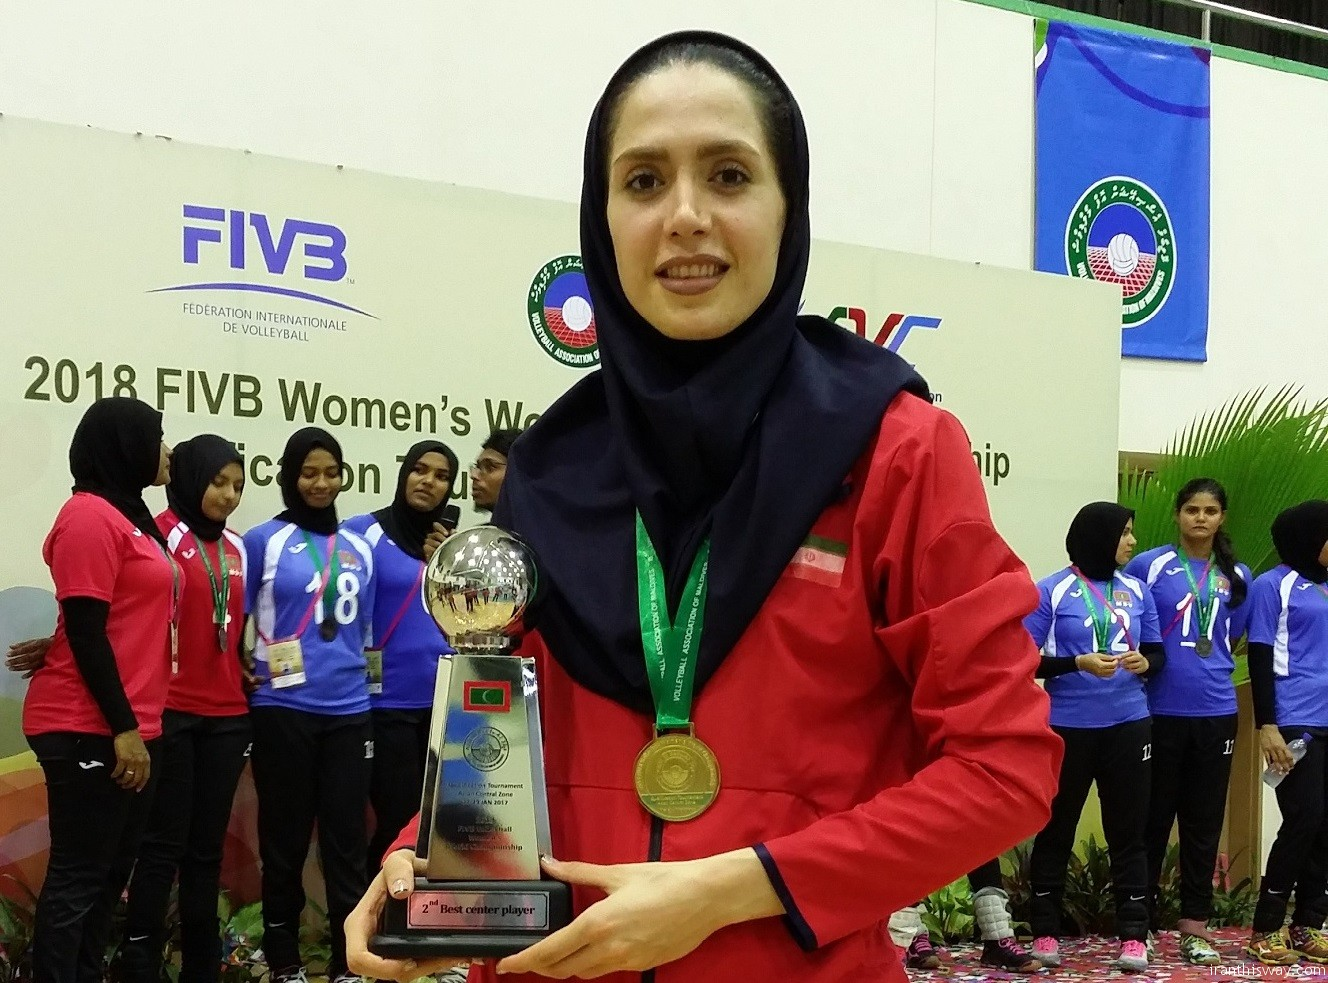 Iranian girl volleyball player Soudabeh Bagherpour has been elected as the best middle-defense player in women's world qualifiers in Central Asia, an official said.